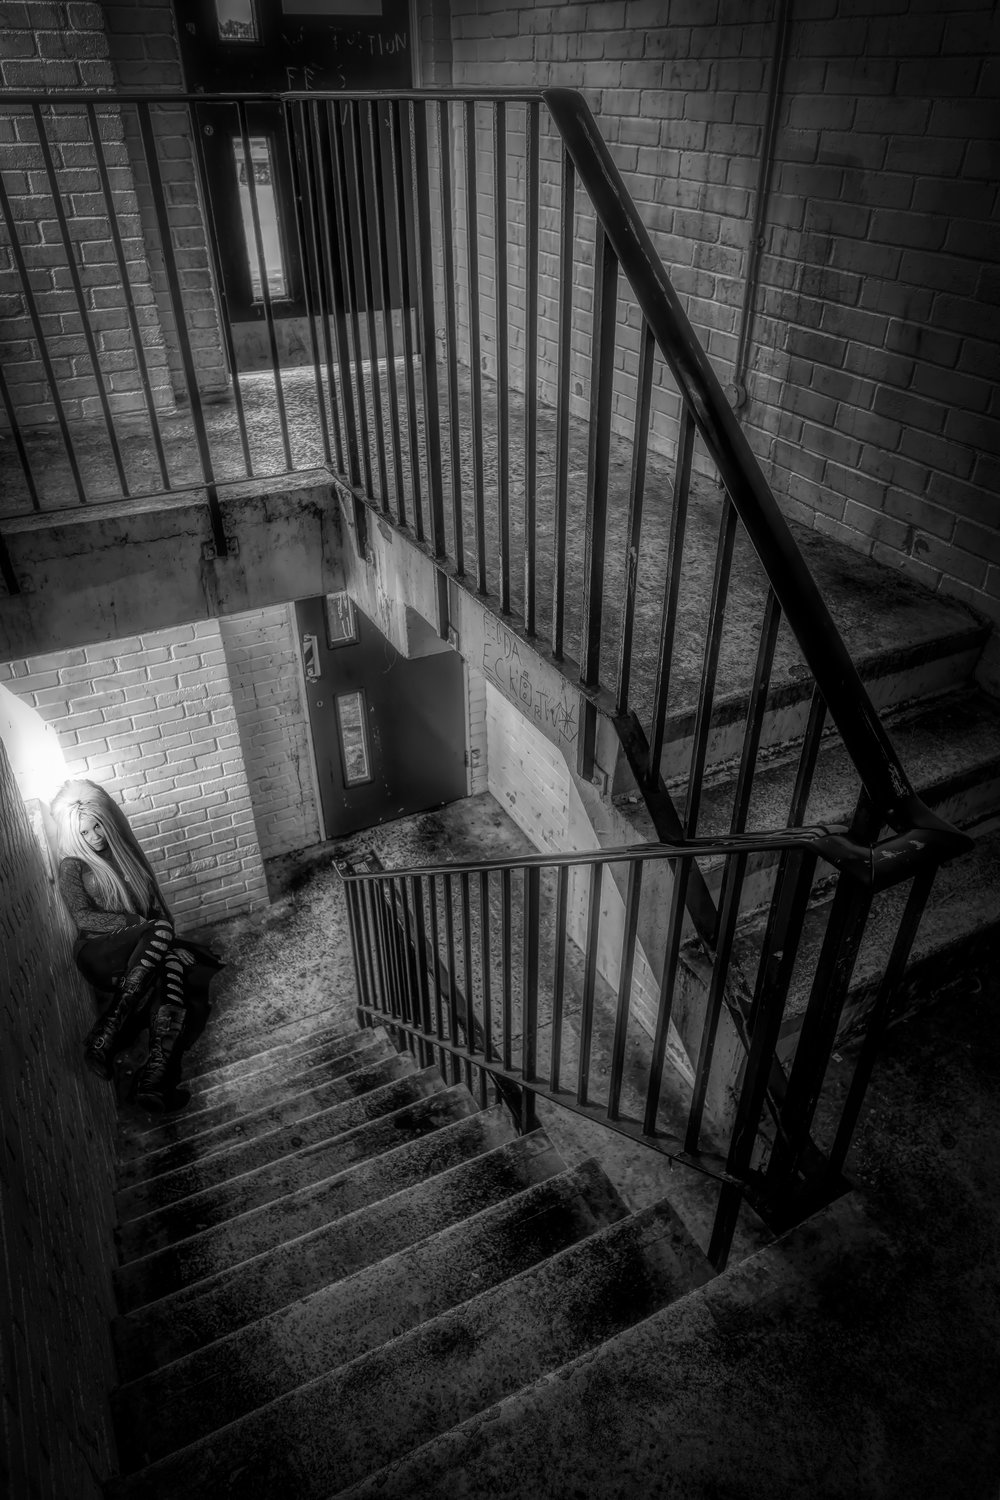 In the Stairwell